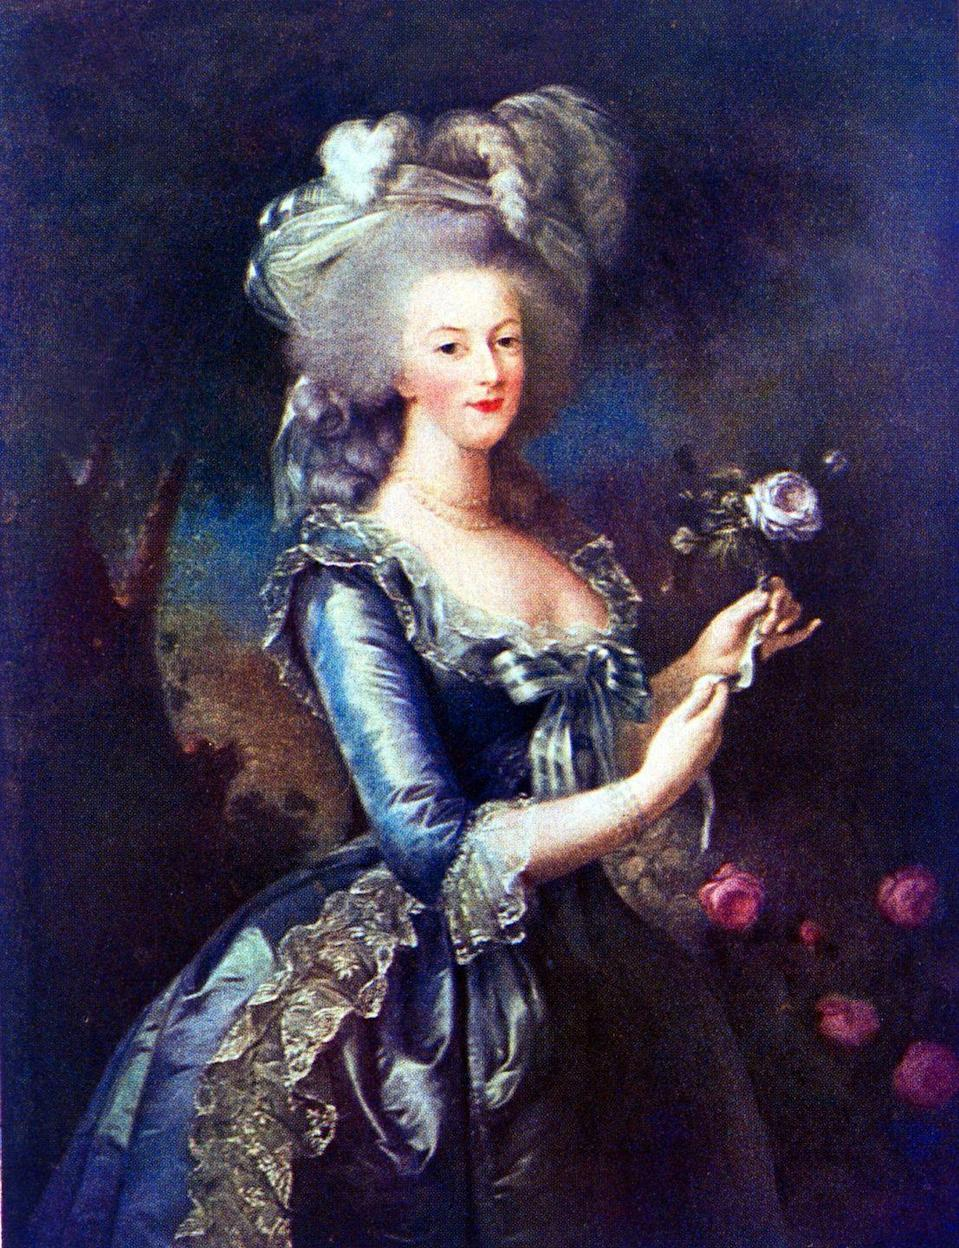 "<p>When Louis XVI married 14-year-old Marie Antoinette, he didn't even do so in person. According to <a href=""https://www.history.com/news/royal-weddings-gone-bad"" rel=""nofollow noopener"" target=""_blank"" data-ylk=""slk:History"" class=""link rapid-noclick-resp""><em>History</em></a>, the nuptials ""took place by proxy in the bride's native Vienna; her older brother Ferdinand stood in as the groom at the altar."" Not your usual royal wedding. And per History, ""In what was seen as a bad omen at the time, his wife let a large blot of ink fall onto the marriage contract, covering half her name.""</p>"